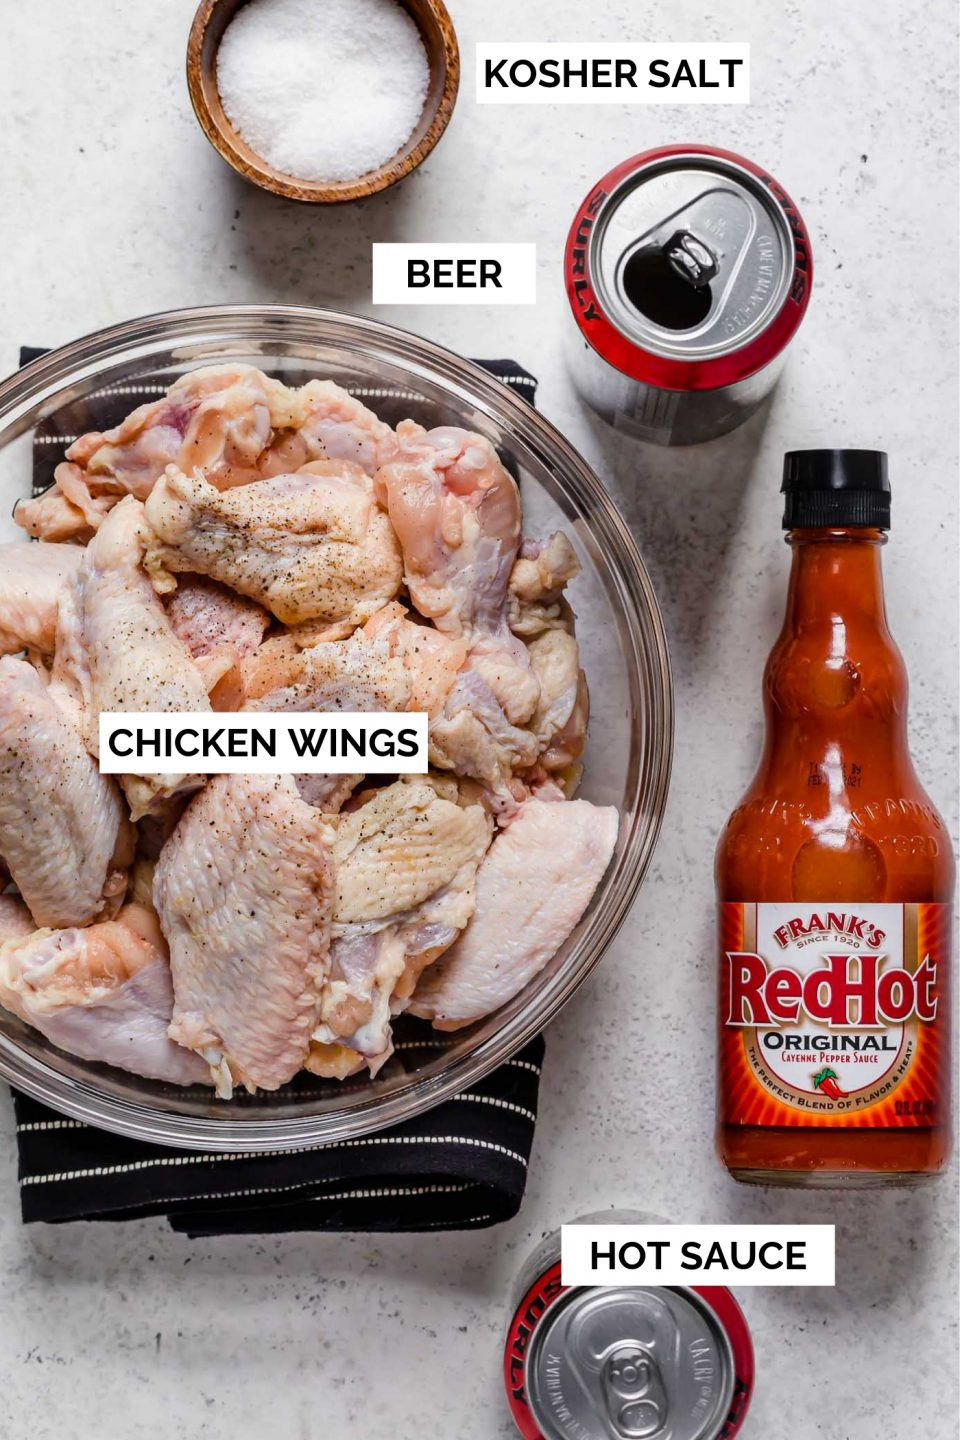 Grilled chicken wings ingredients arranged on a white surface - a bowl of chicken wings, a bottle of Frank's RedHot hot sauce, a can of Surly Furious Double IPA beer, & a small wooden bowl of kosher salt.